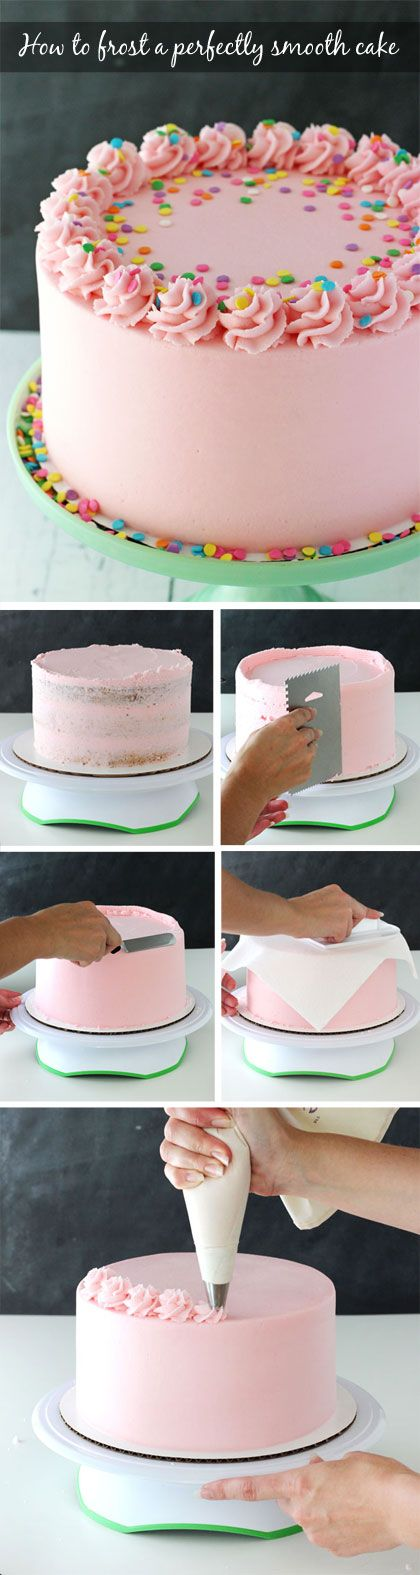 Tutorial - How to frost a perfectly smooth cake with buttercream icing! Images and animated gifs with detailed instructions! (115k)